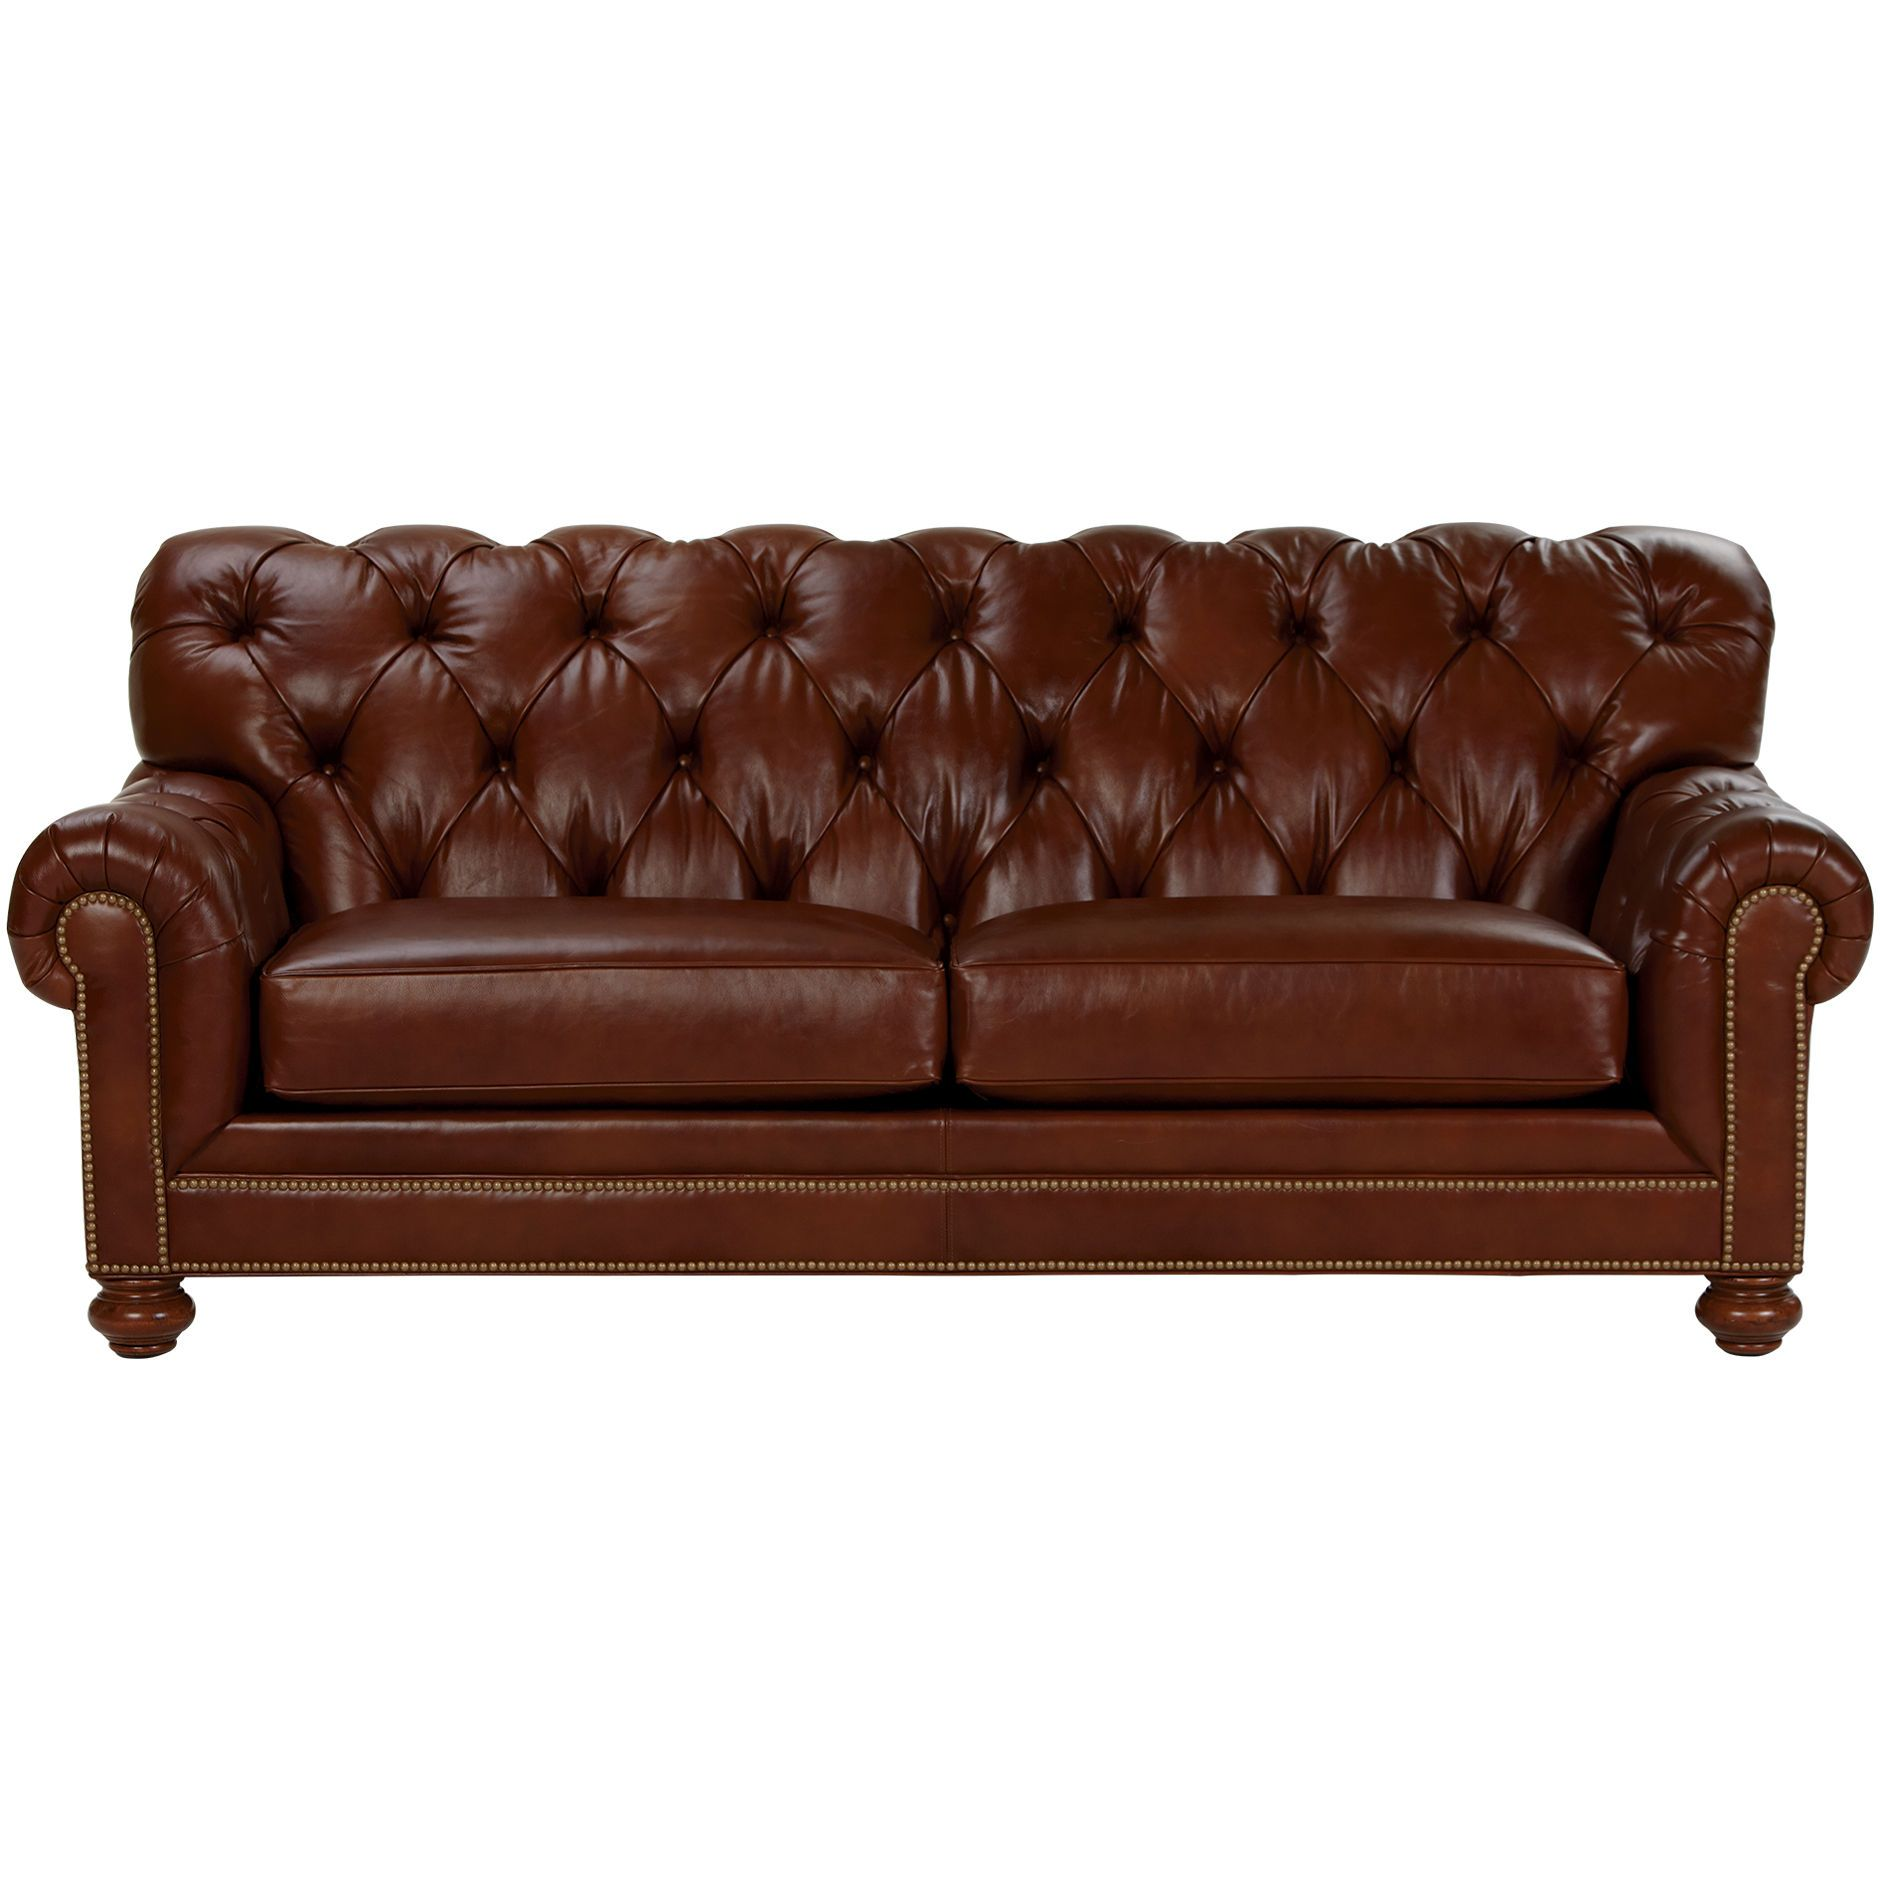 Chadwick Leather Sofa Old English Saddle Ethan Allen US